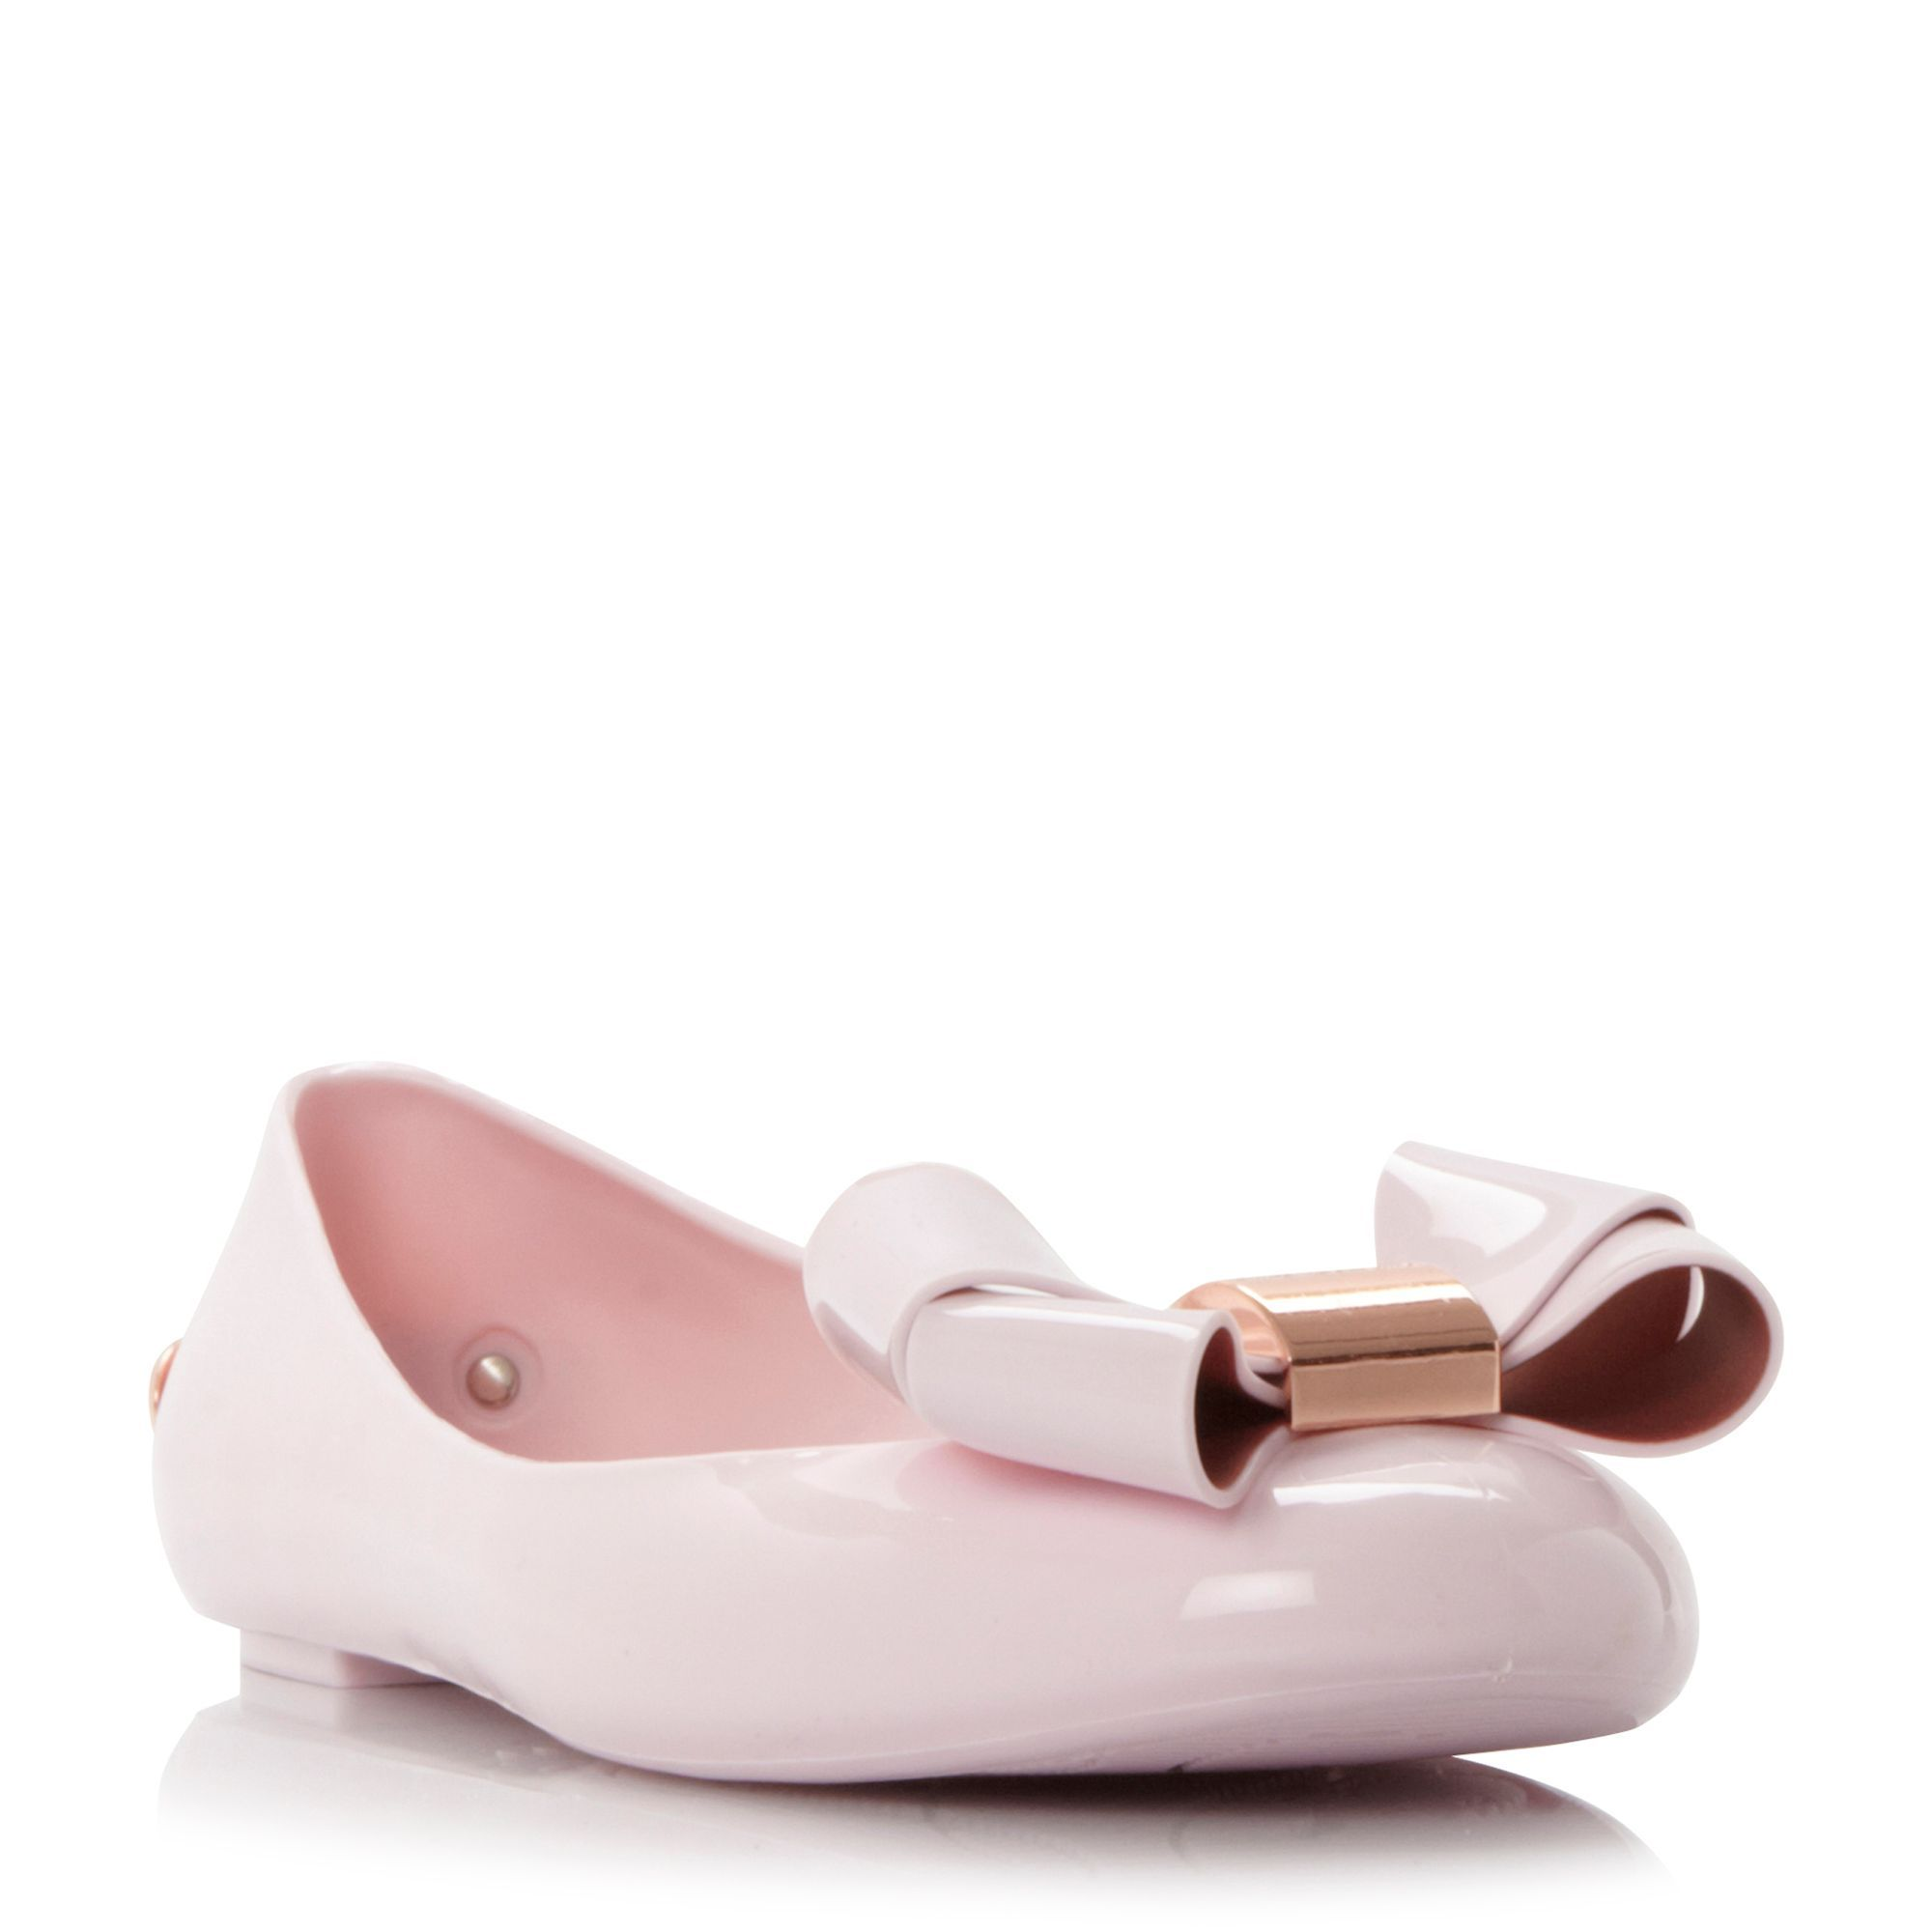 64b45b0f94b30a Ted Baker Faiyte bow detail jelly ballet pumps